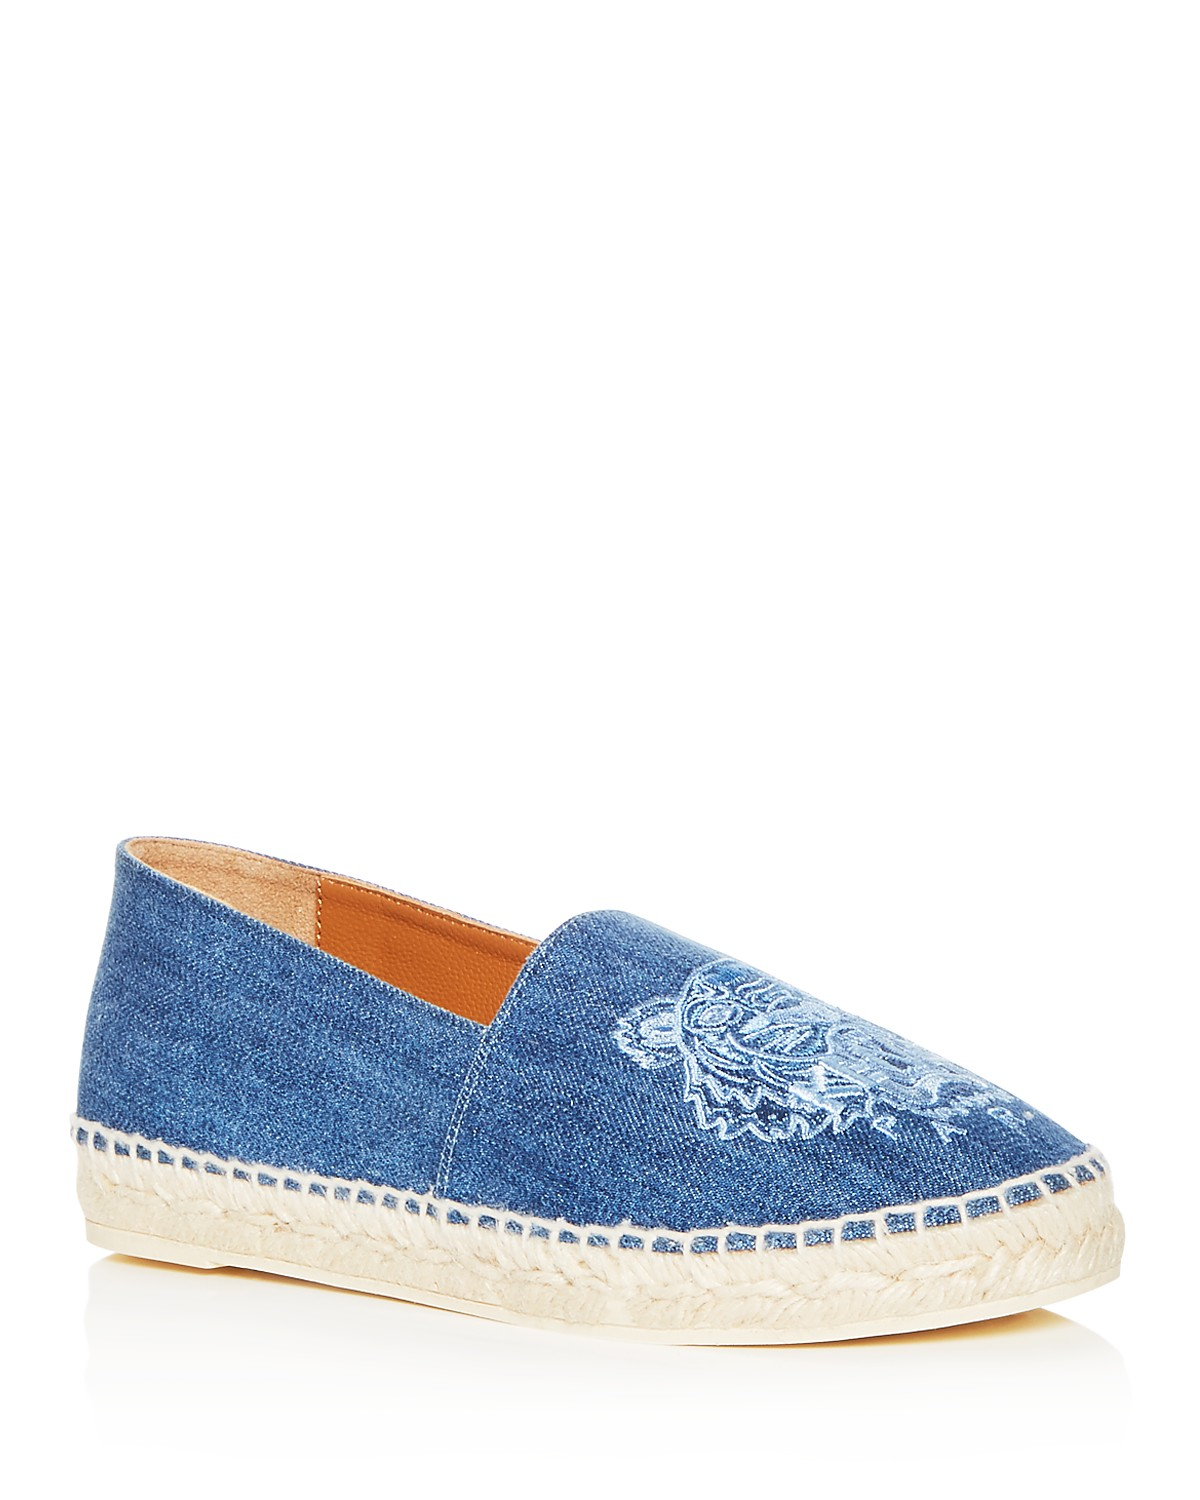 Kenzo Women's Classic Tiger Embroidered Denim Espadrille Flats sSH6D4z